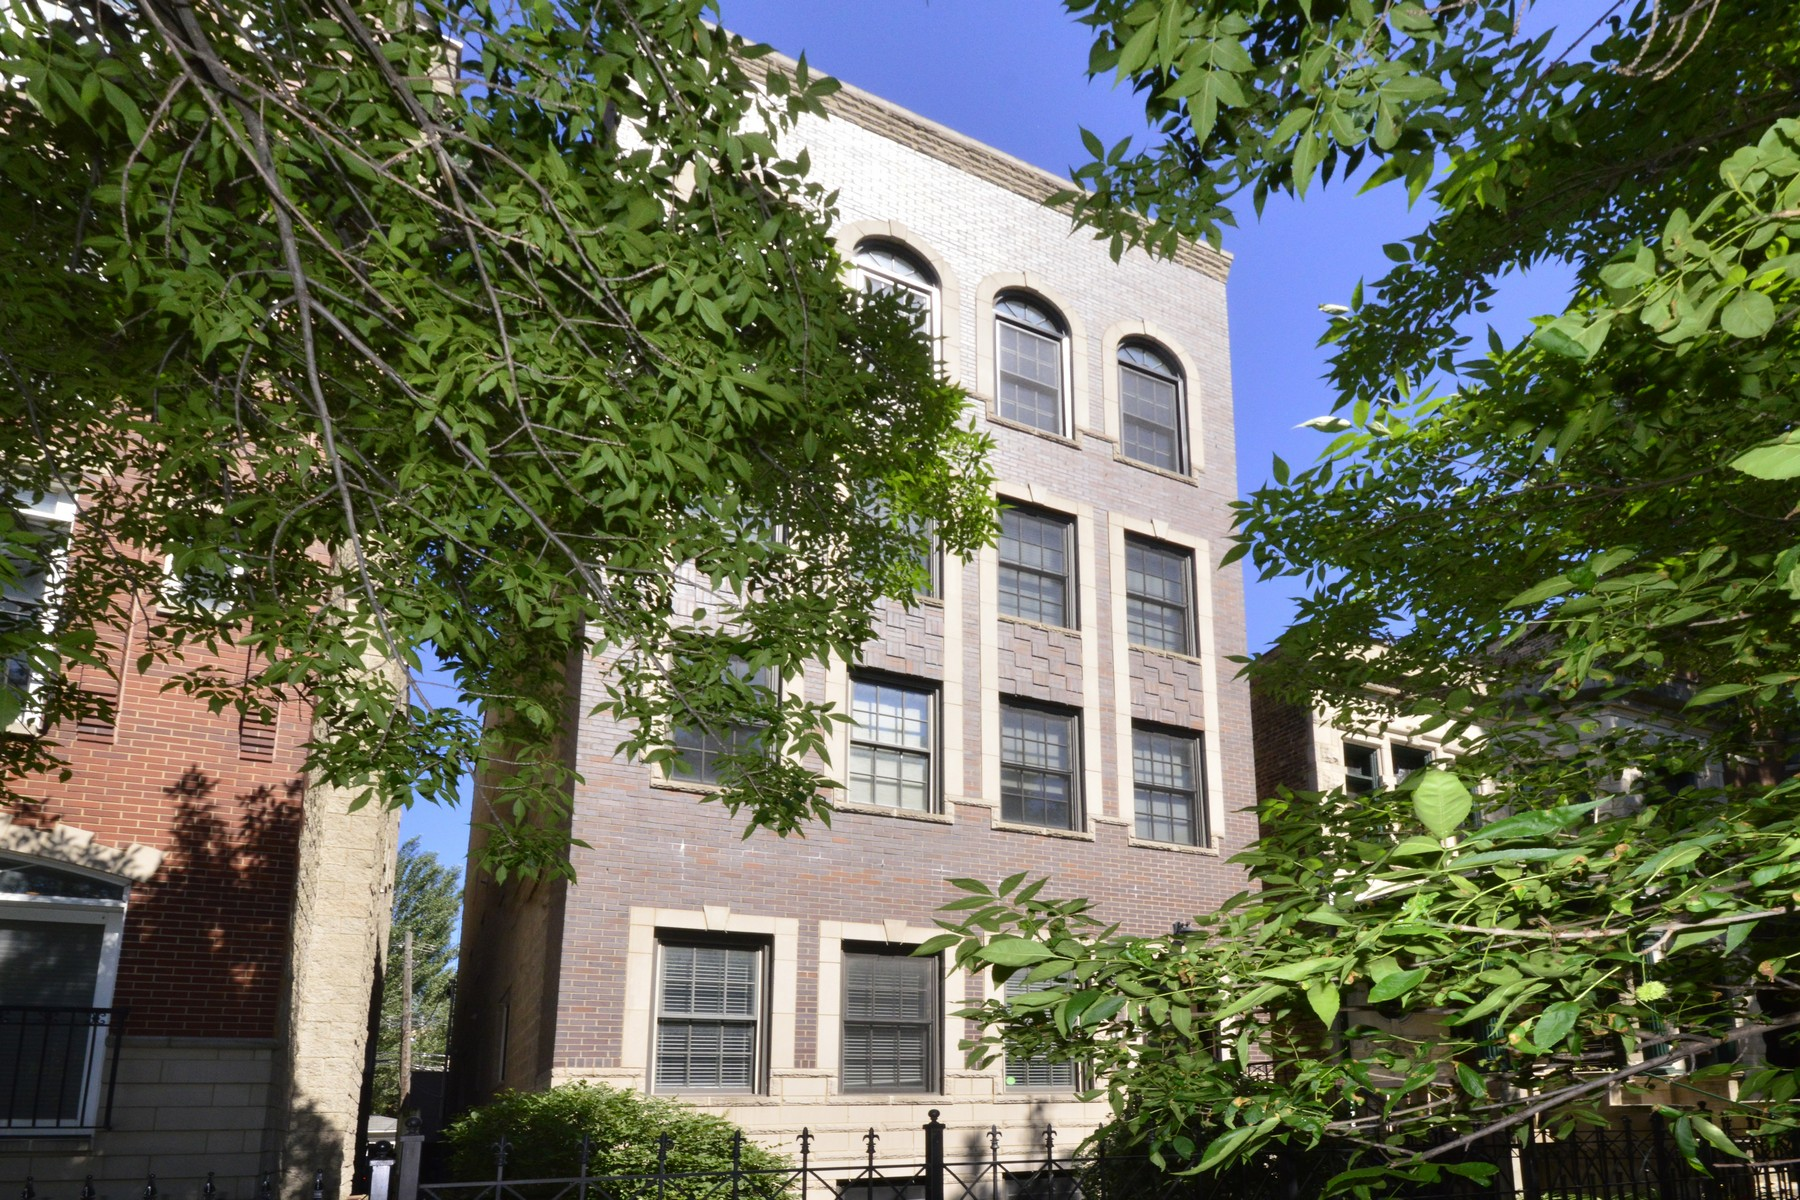 共管物業 為 出售 在 Meticulous Lakeview Home 3629 N Wilton Avenue Unit 3 Lakeview, Chicago, 伊利諾斯州, 60613 美國